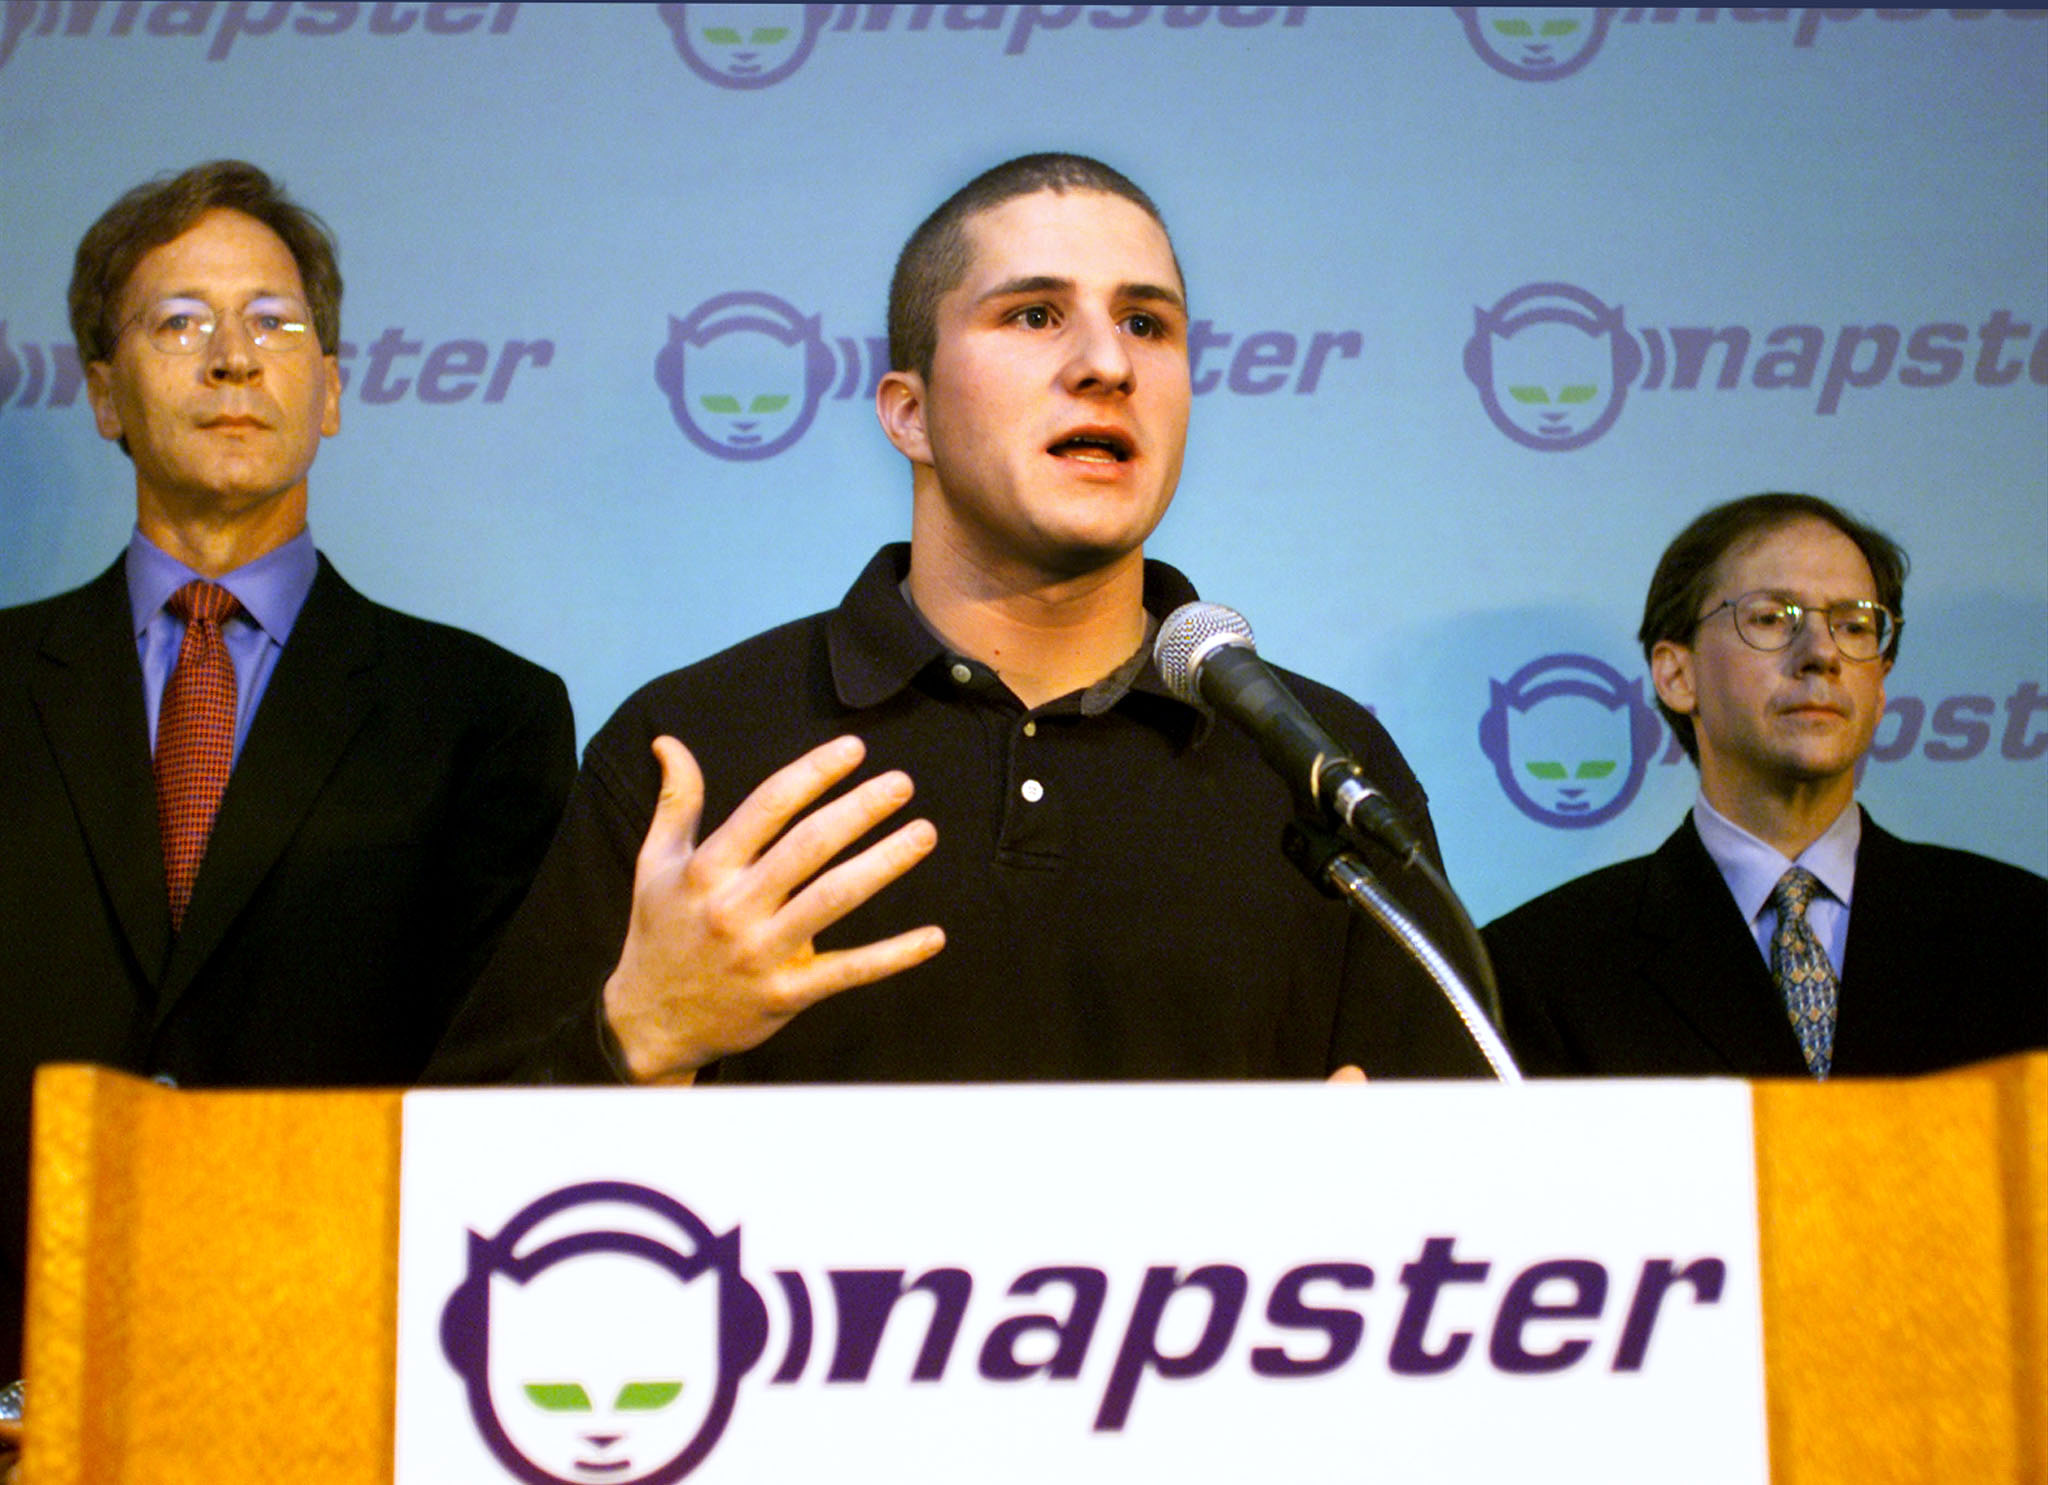 Flanked by Napster attorney Jonathan Schiller (L) and CEO Hank Barry, Napster founder Shawn Fanning